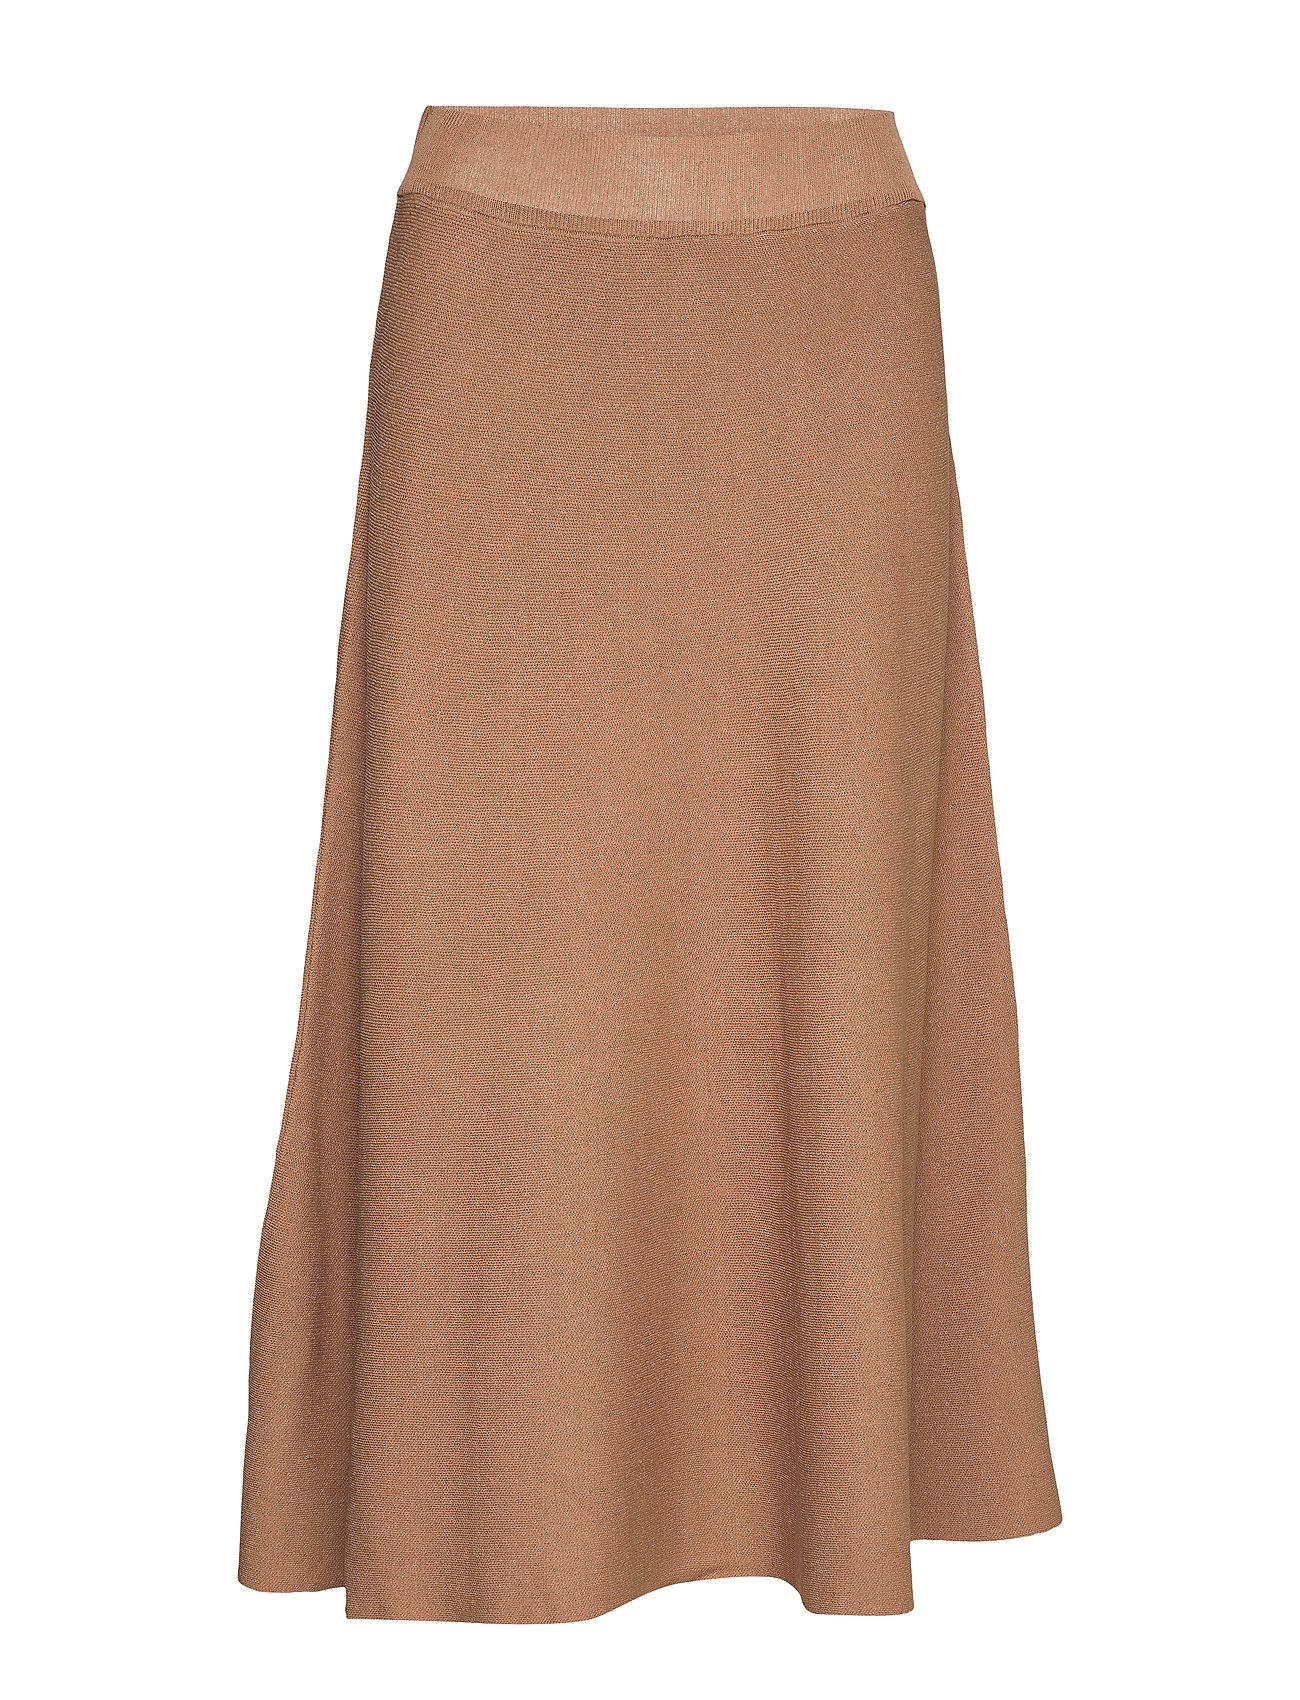 Cream Celina Skirt - BROWN SUGAR